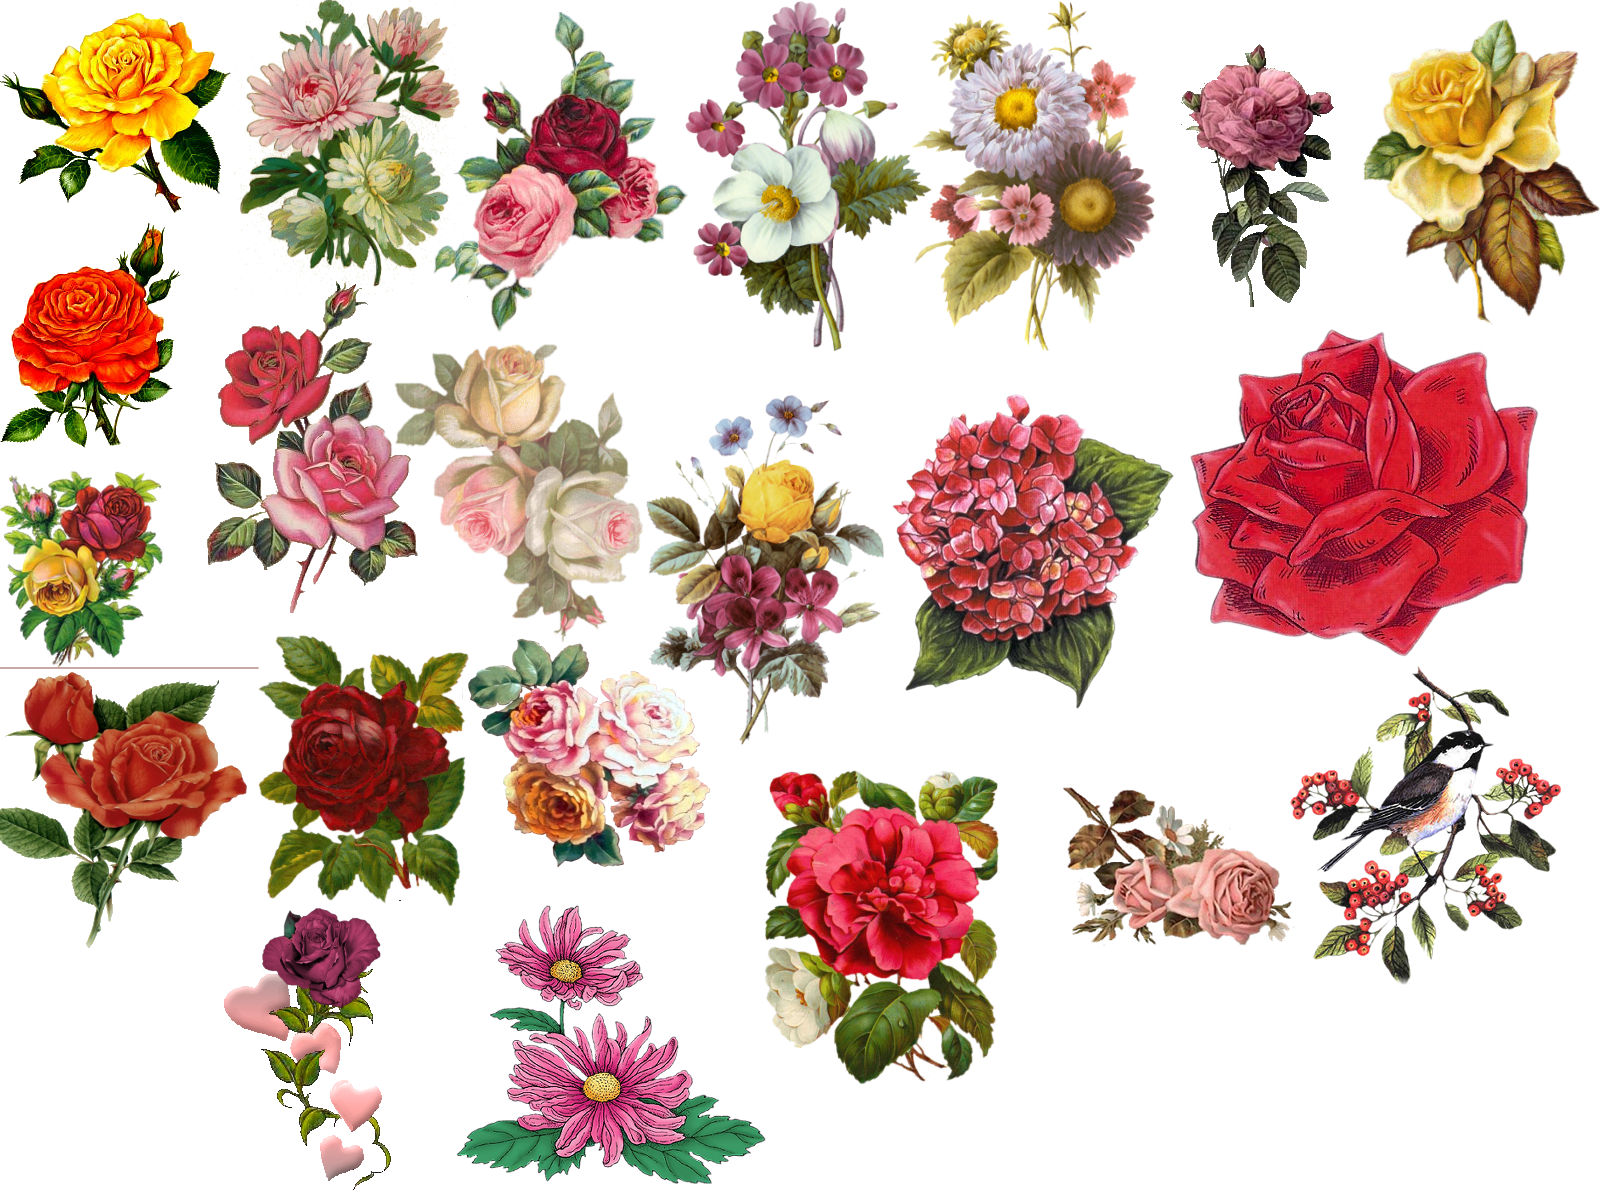 Vintage flower pictures beautiful flowers drawings pinterest vintage flower pictures beautiful flowers dhlflorist Image collections